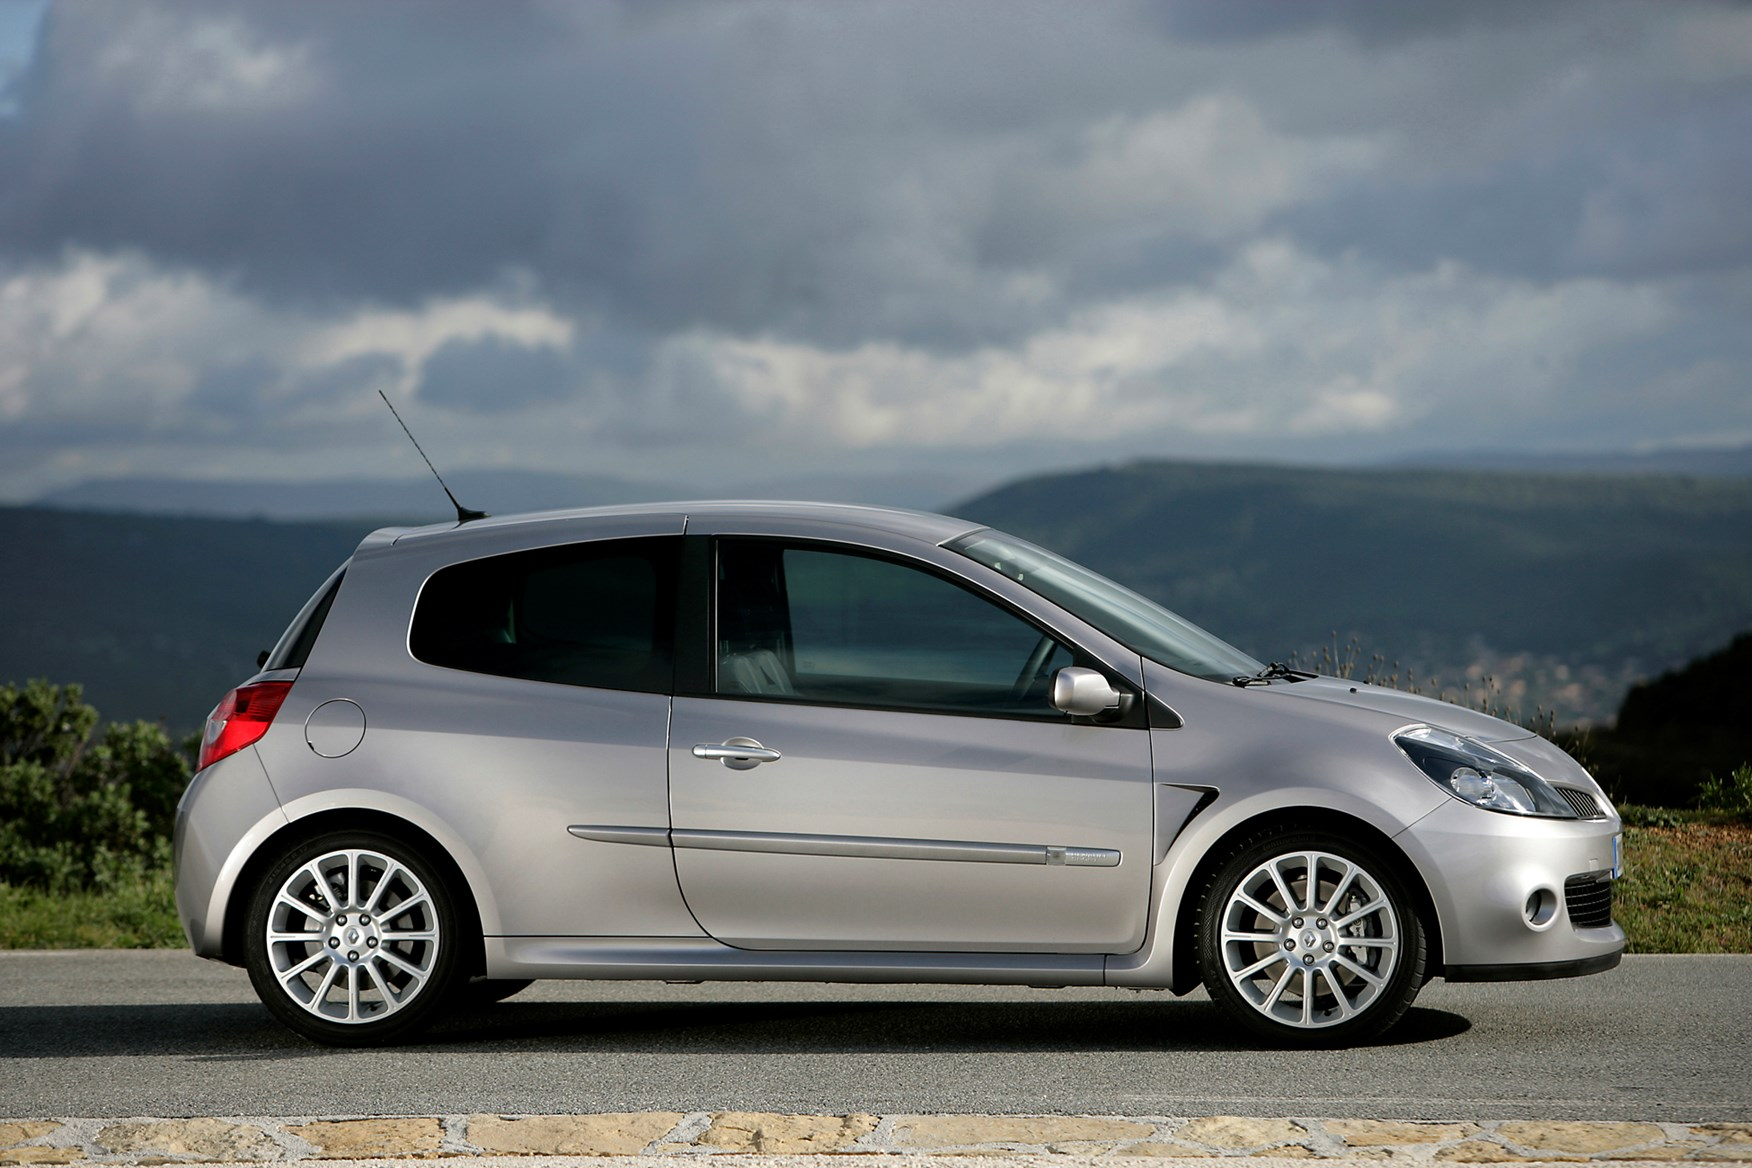 renault clio renaultsport review 2006 2012 parkers. Black Bedroom Furniture Sets. Home Design Ideas